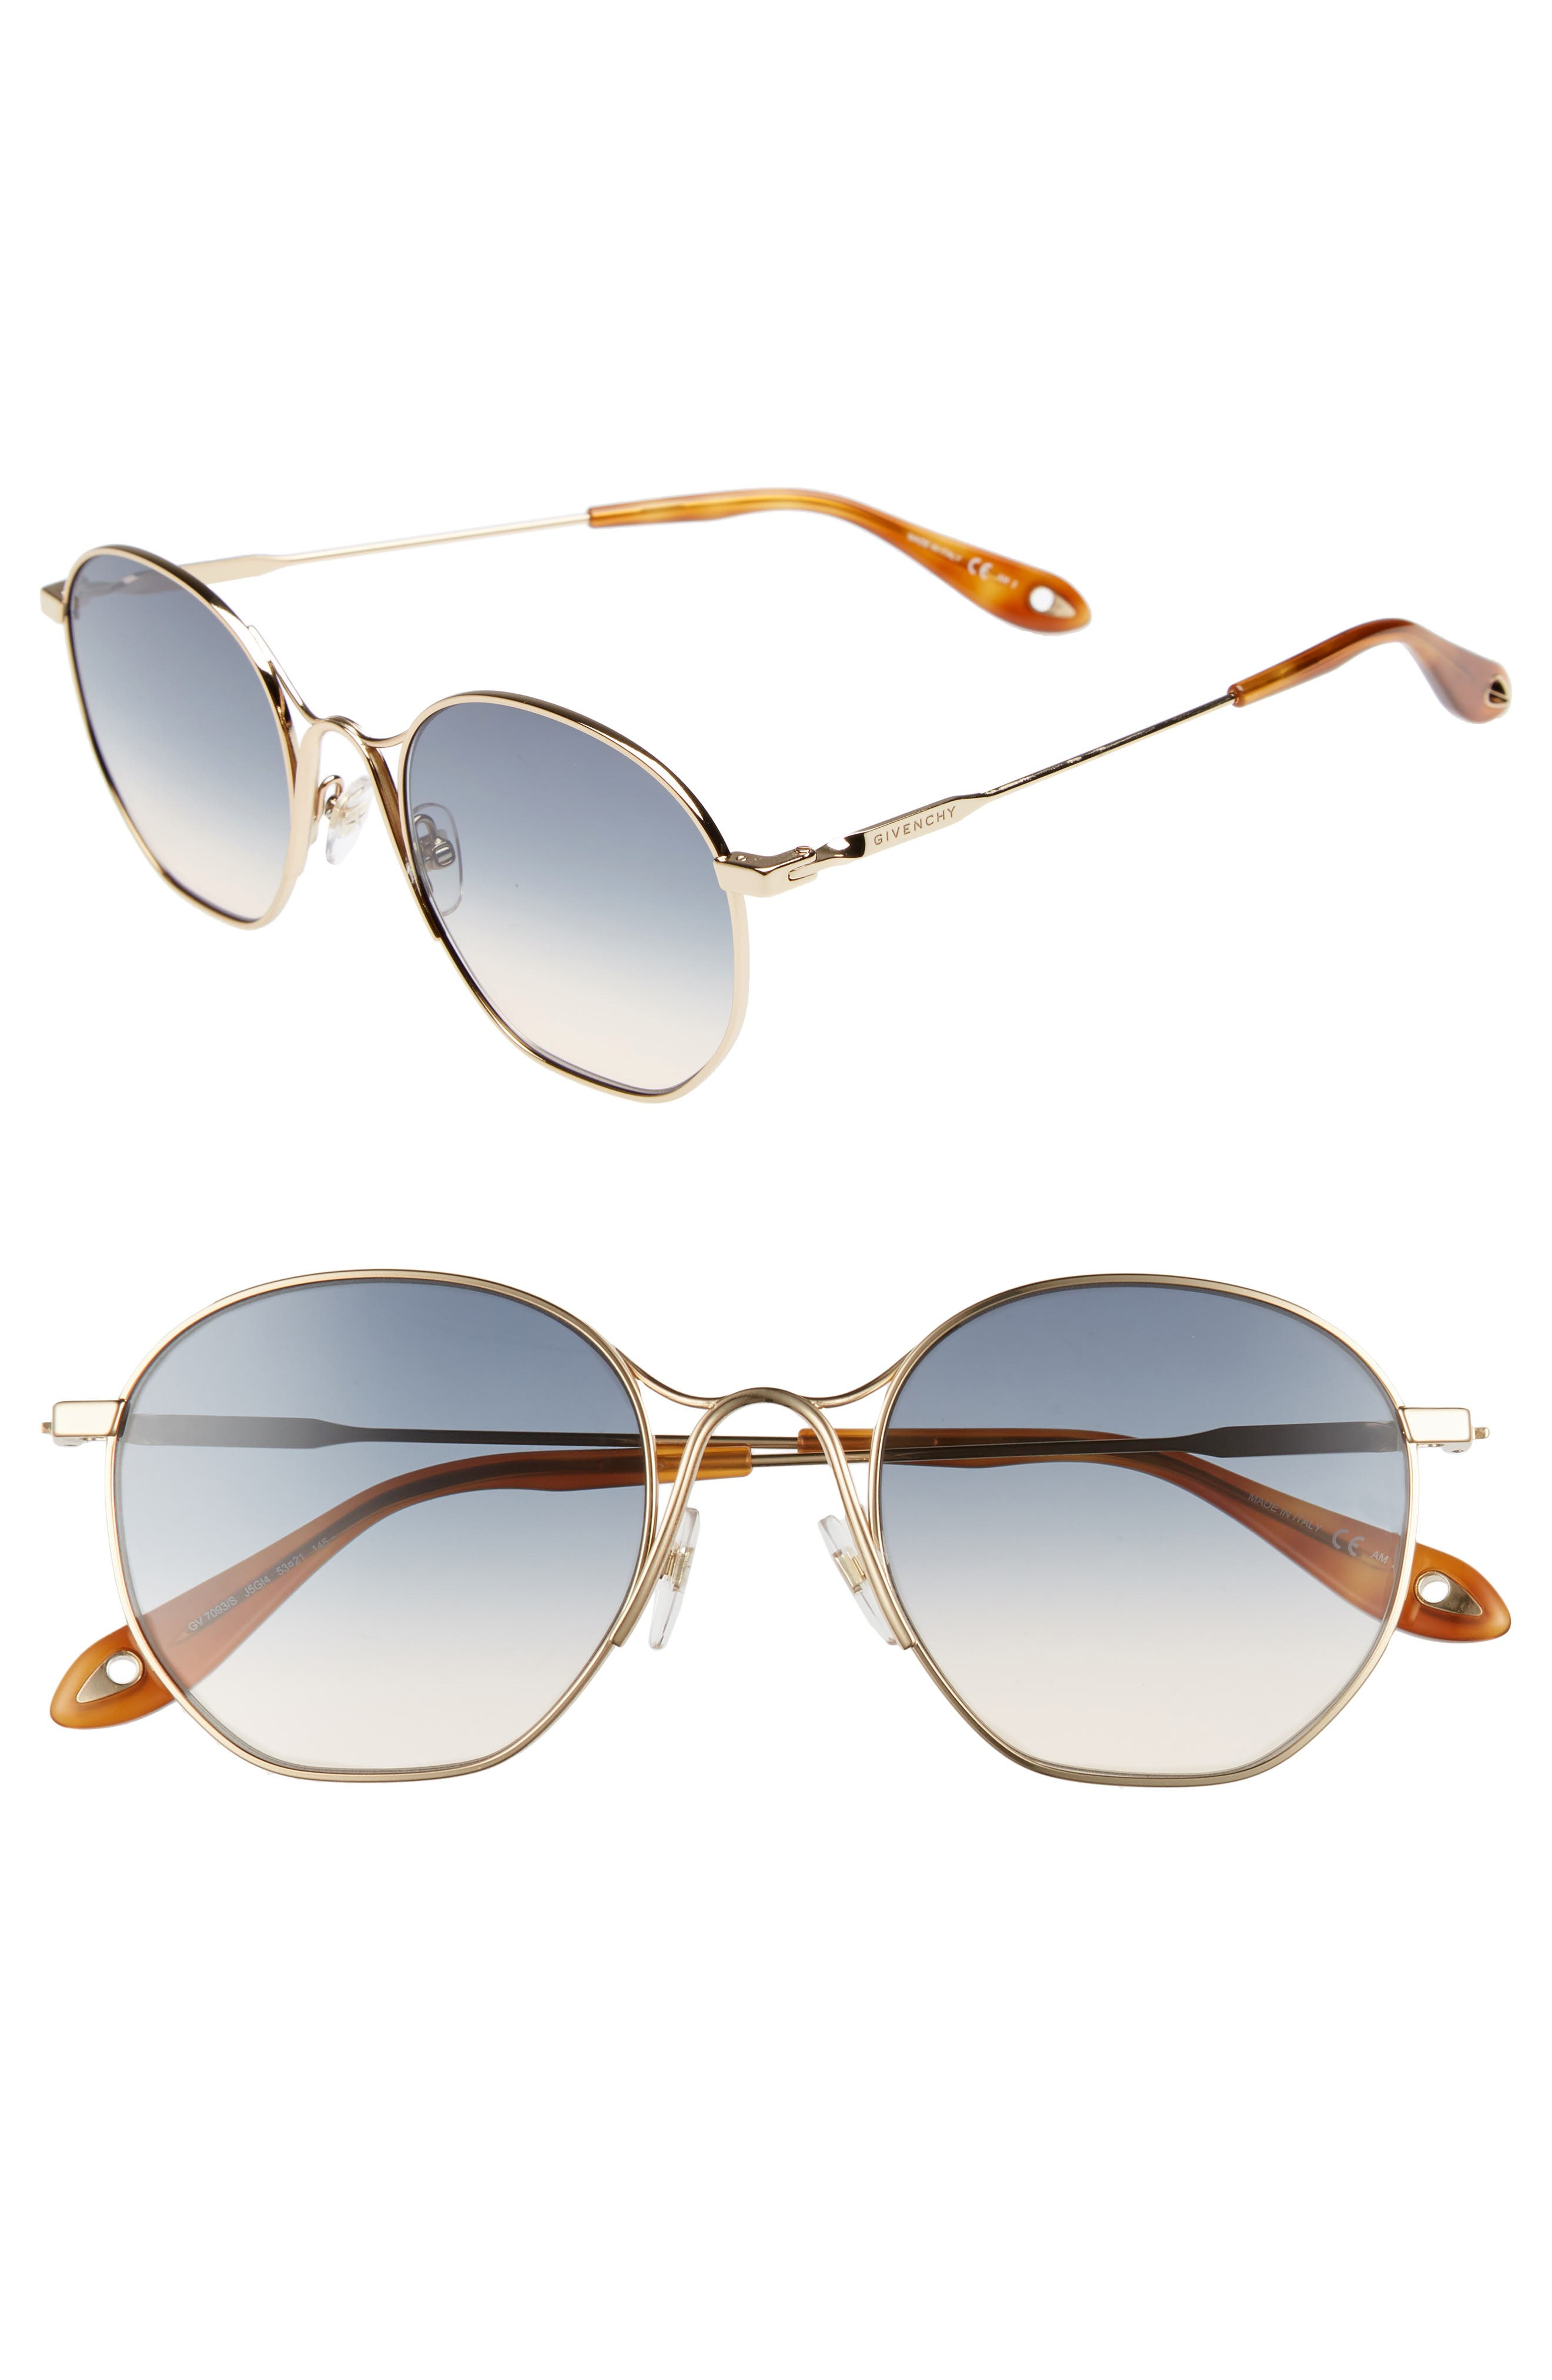 Alternate Image 1 Selected - Givenchy 53mm Squared Round Metal Sunglasses